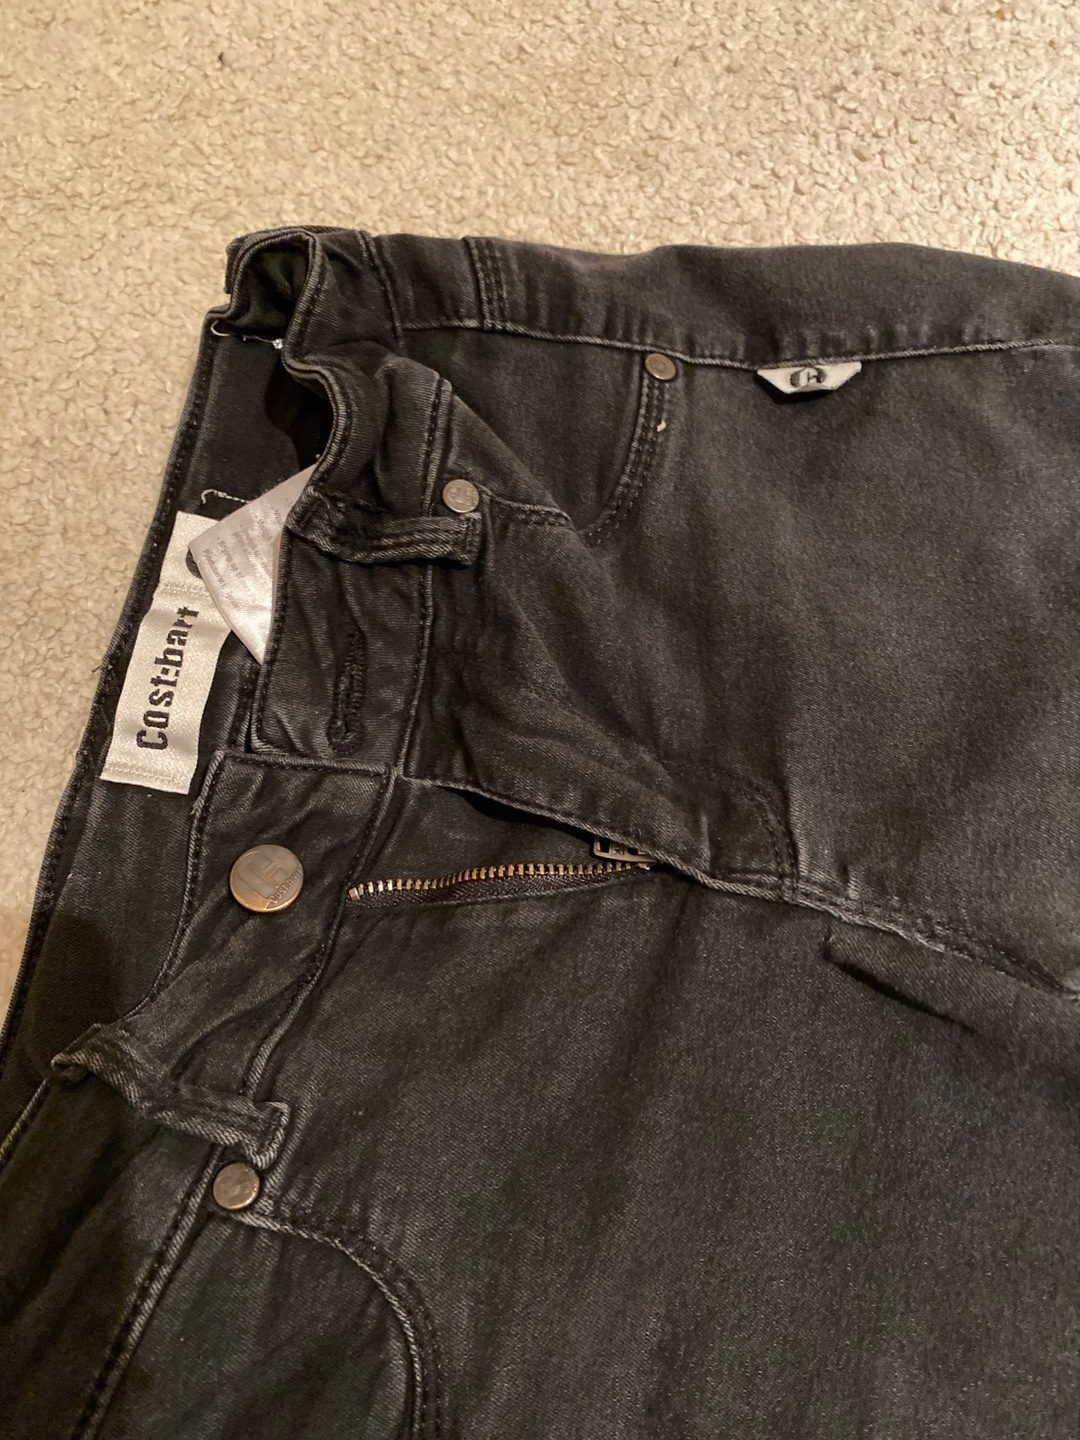 Women's trousers & jeans - COST-BART photo 3